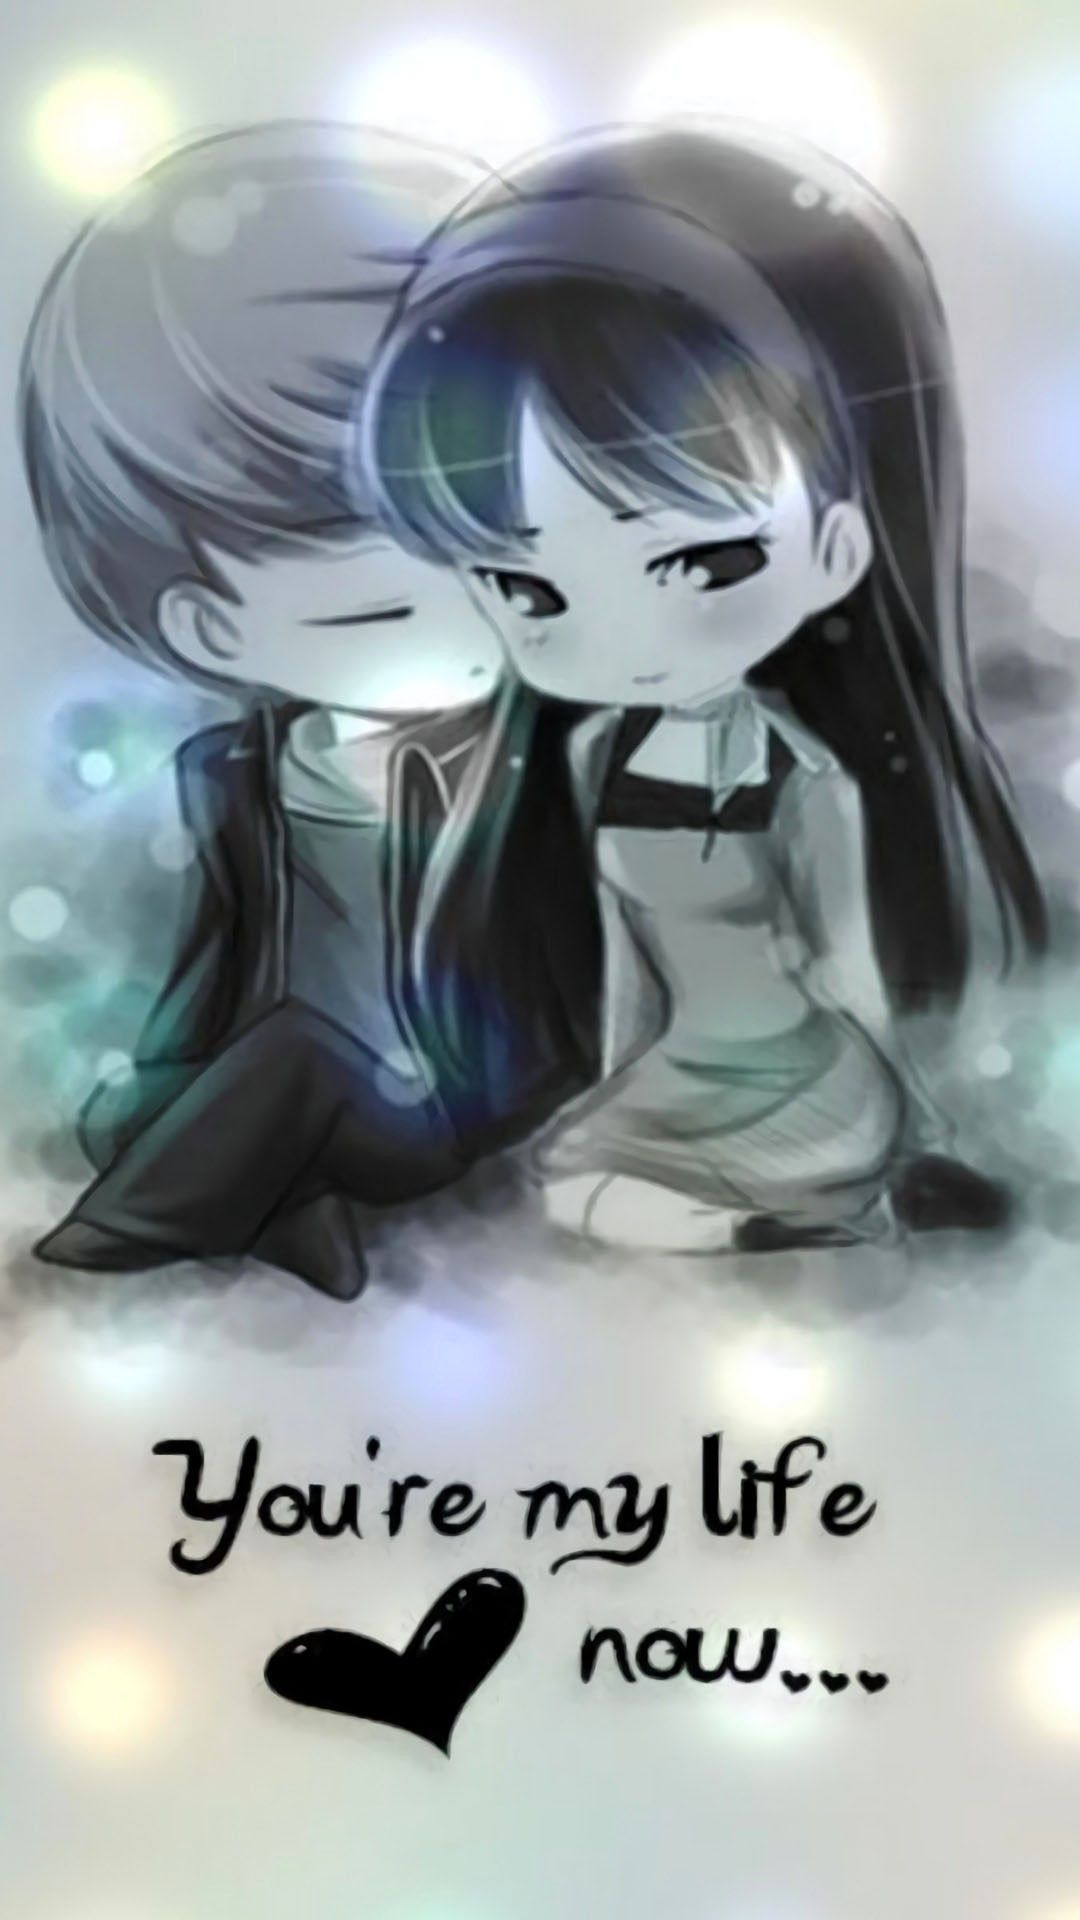 Pin By Shekar Mehta On Backgrounds And Pictures I Love Love You Images Cute Love Cartoons Romantic Love Quotes